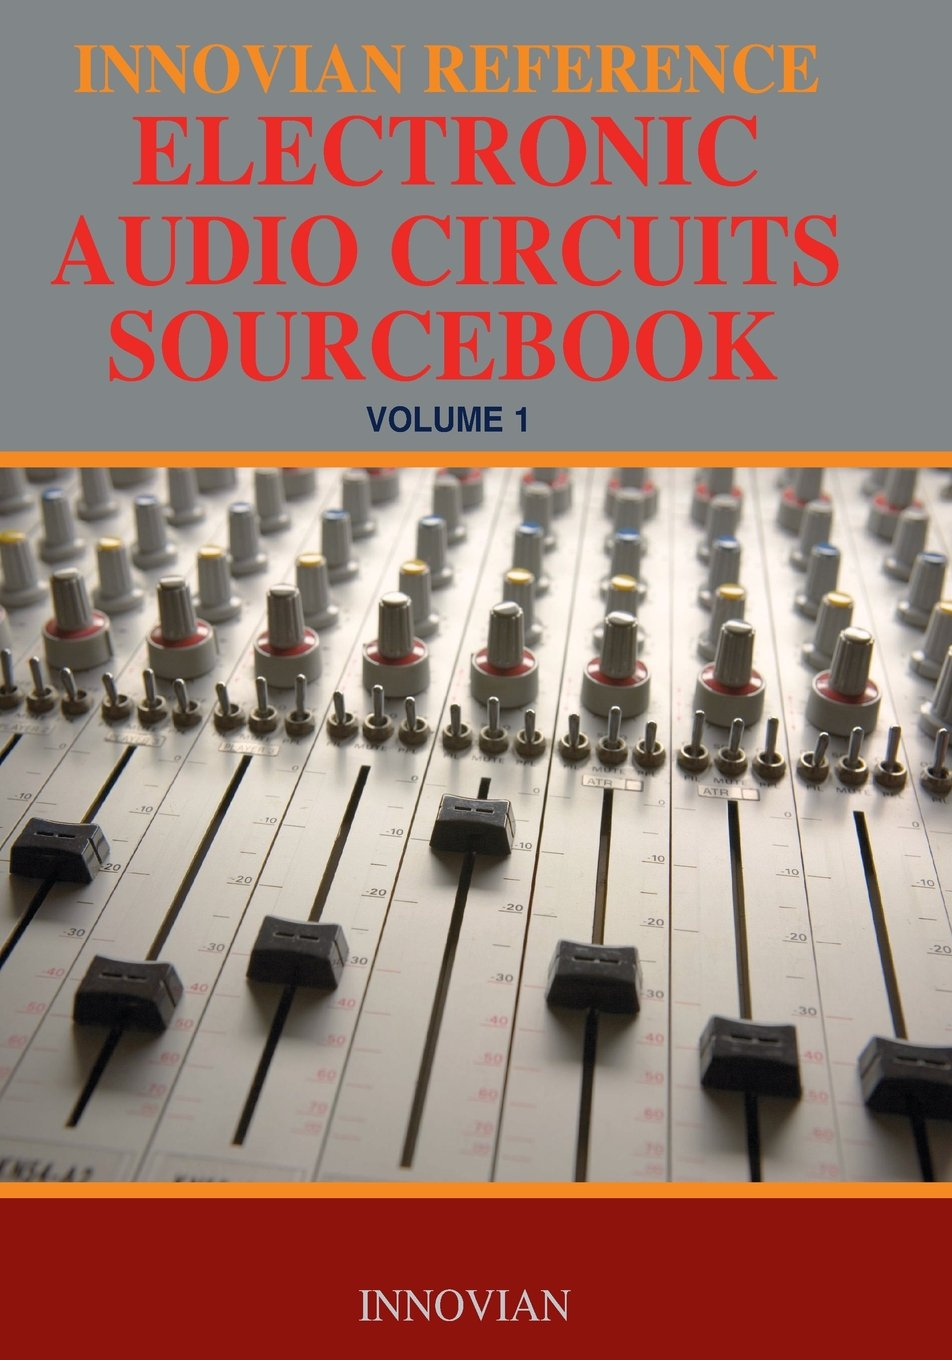 Download Innovian Reference Electronic Audio Circuits Sourcebook pdf